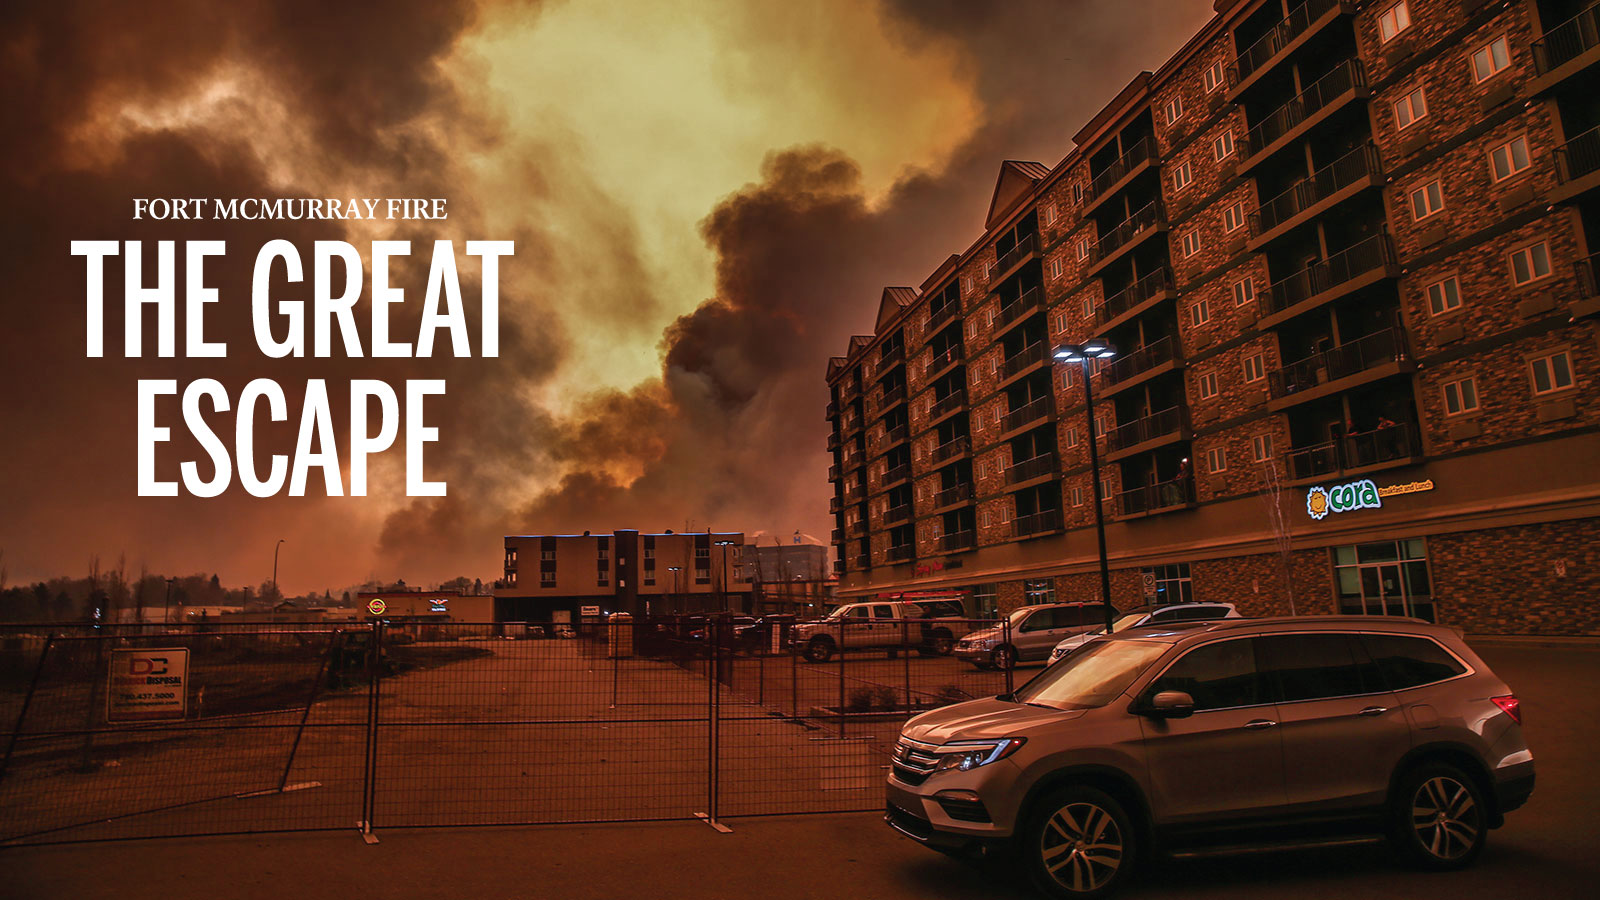 Fort Mcmurray Fire The Great Escape